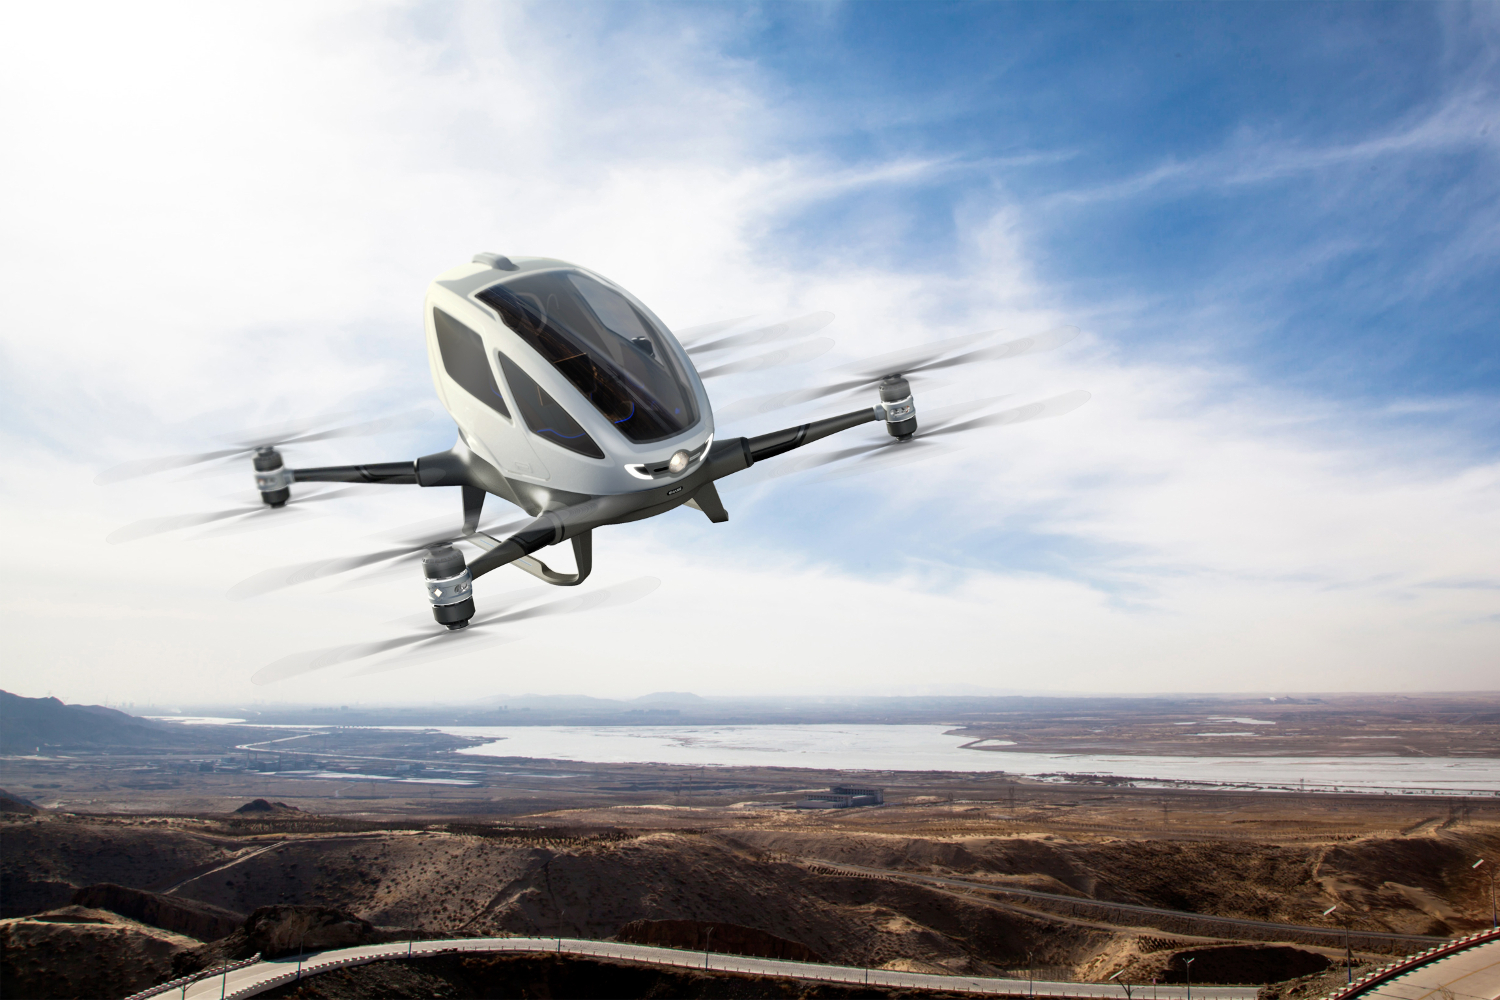 In The Future Drone Taxis May Deliver Manufactured Organs To Hospitals